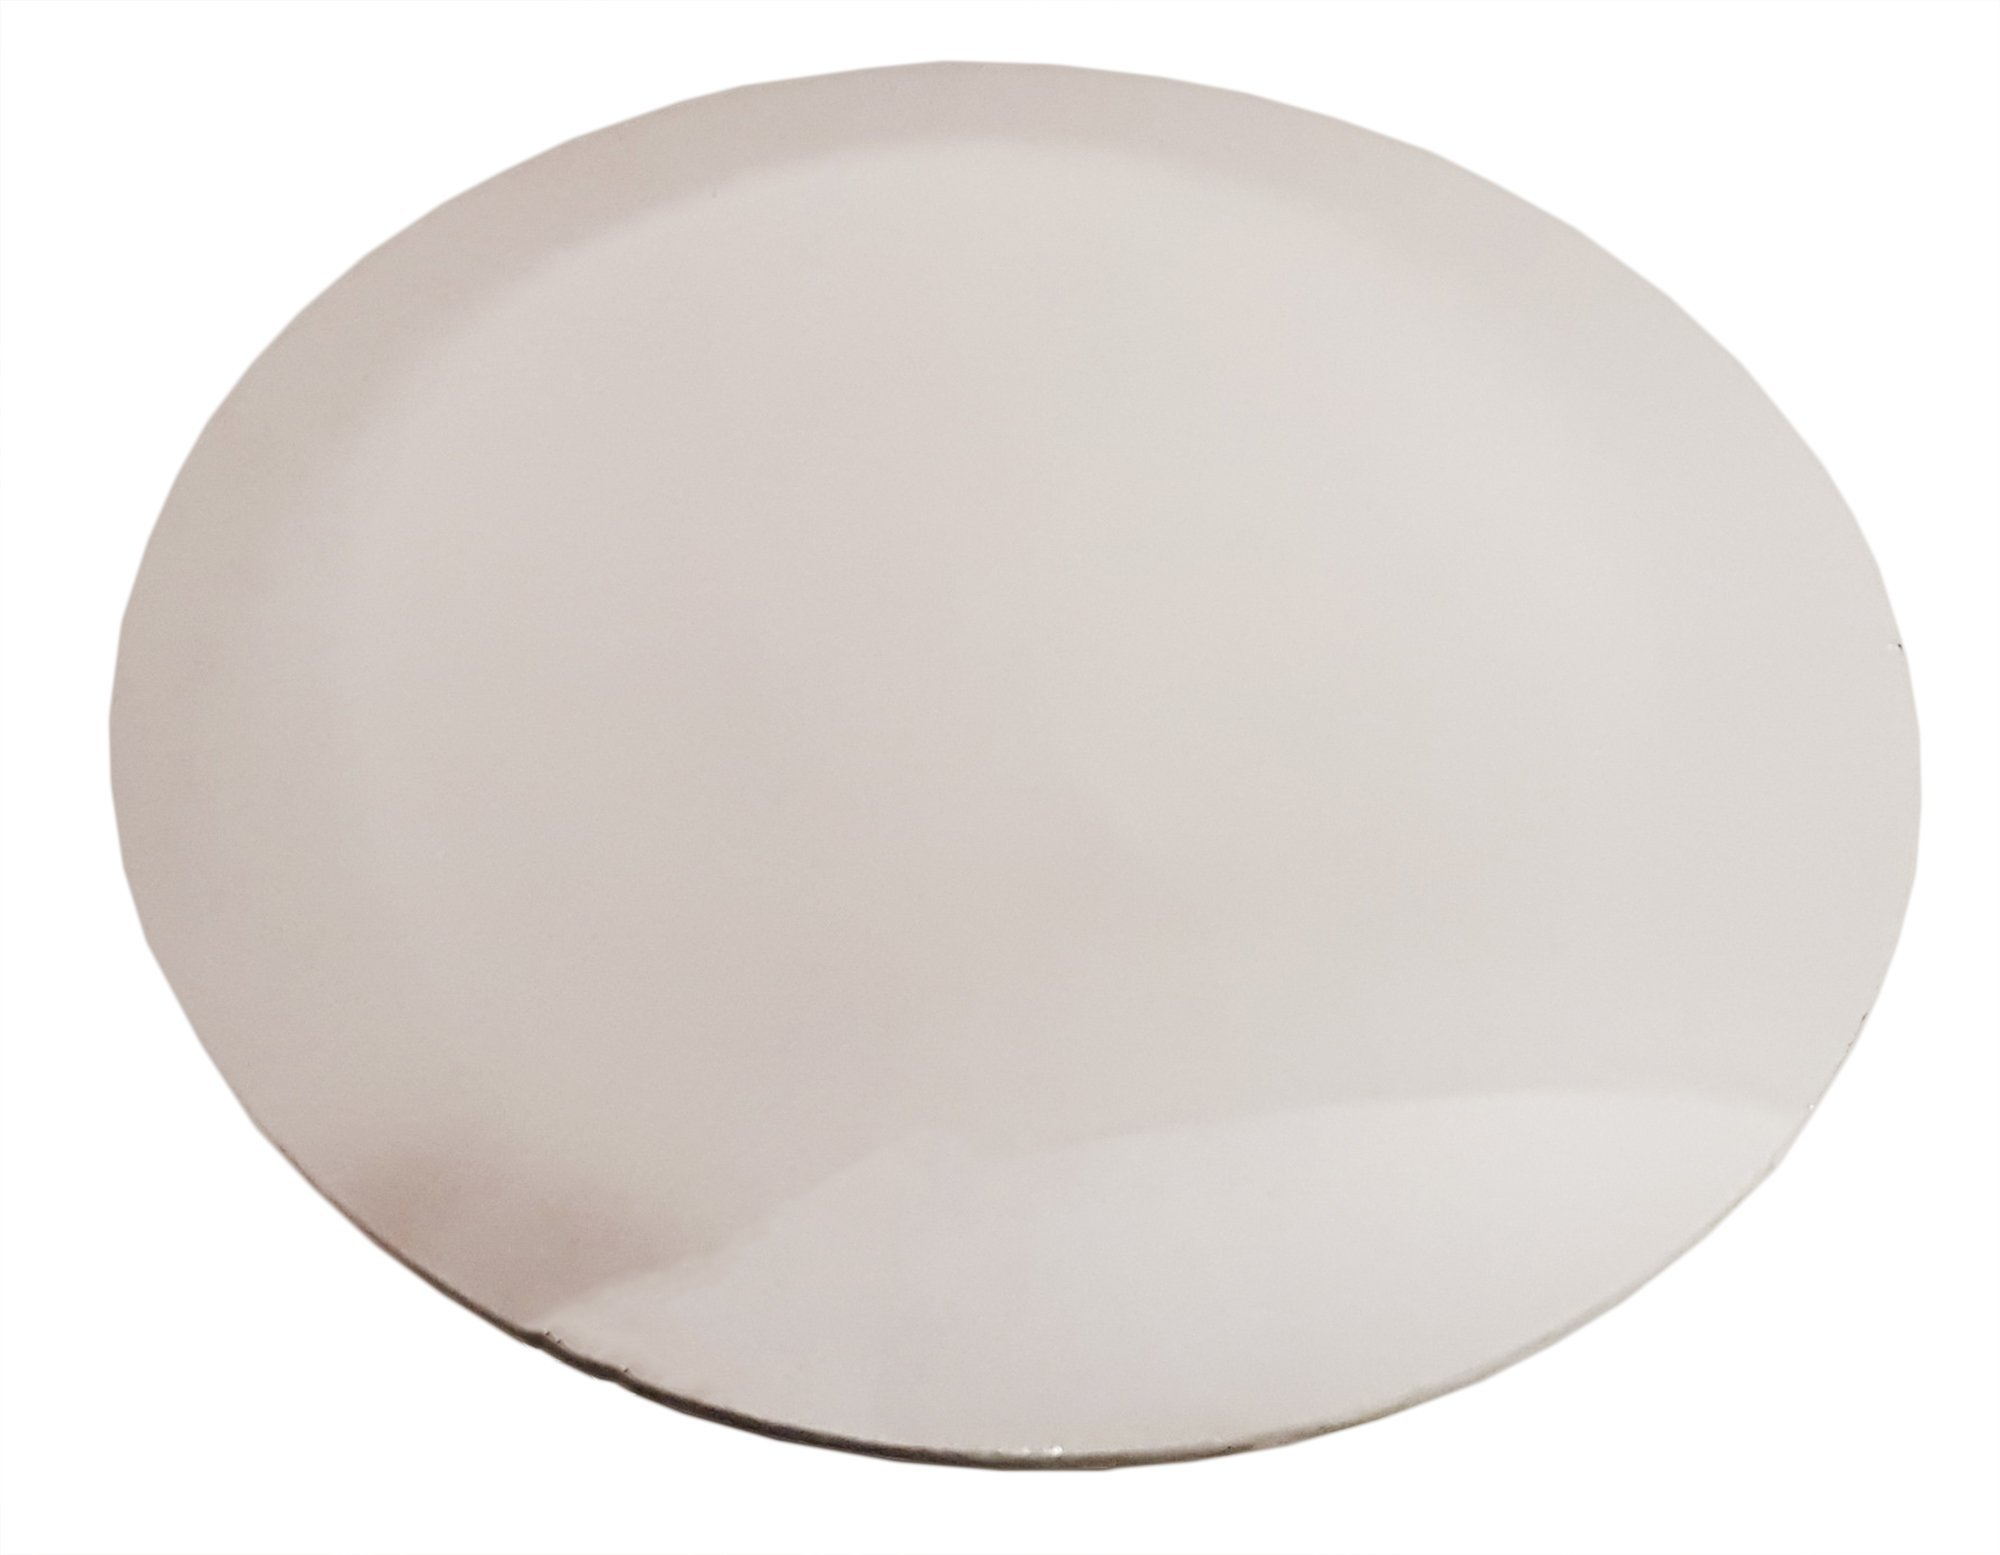 GSC International 4-1301N-10 Round Convex/Concave Mirror (Pack of 10)